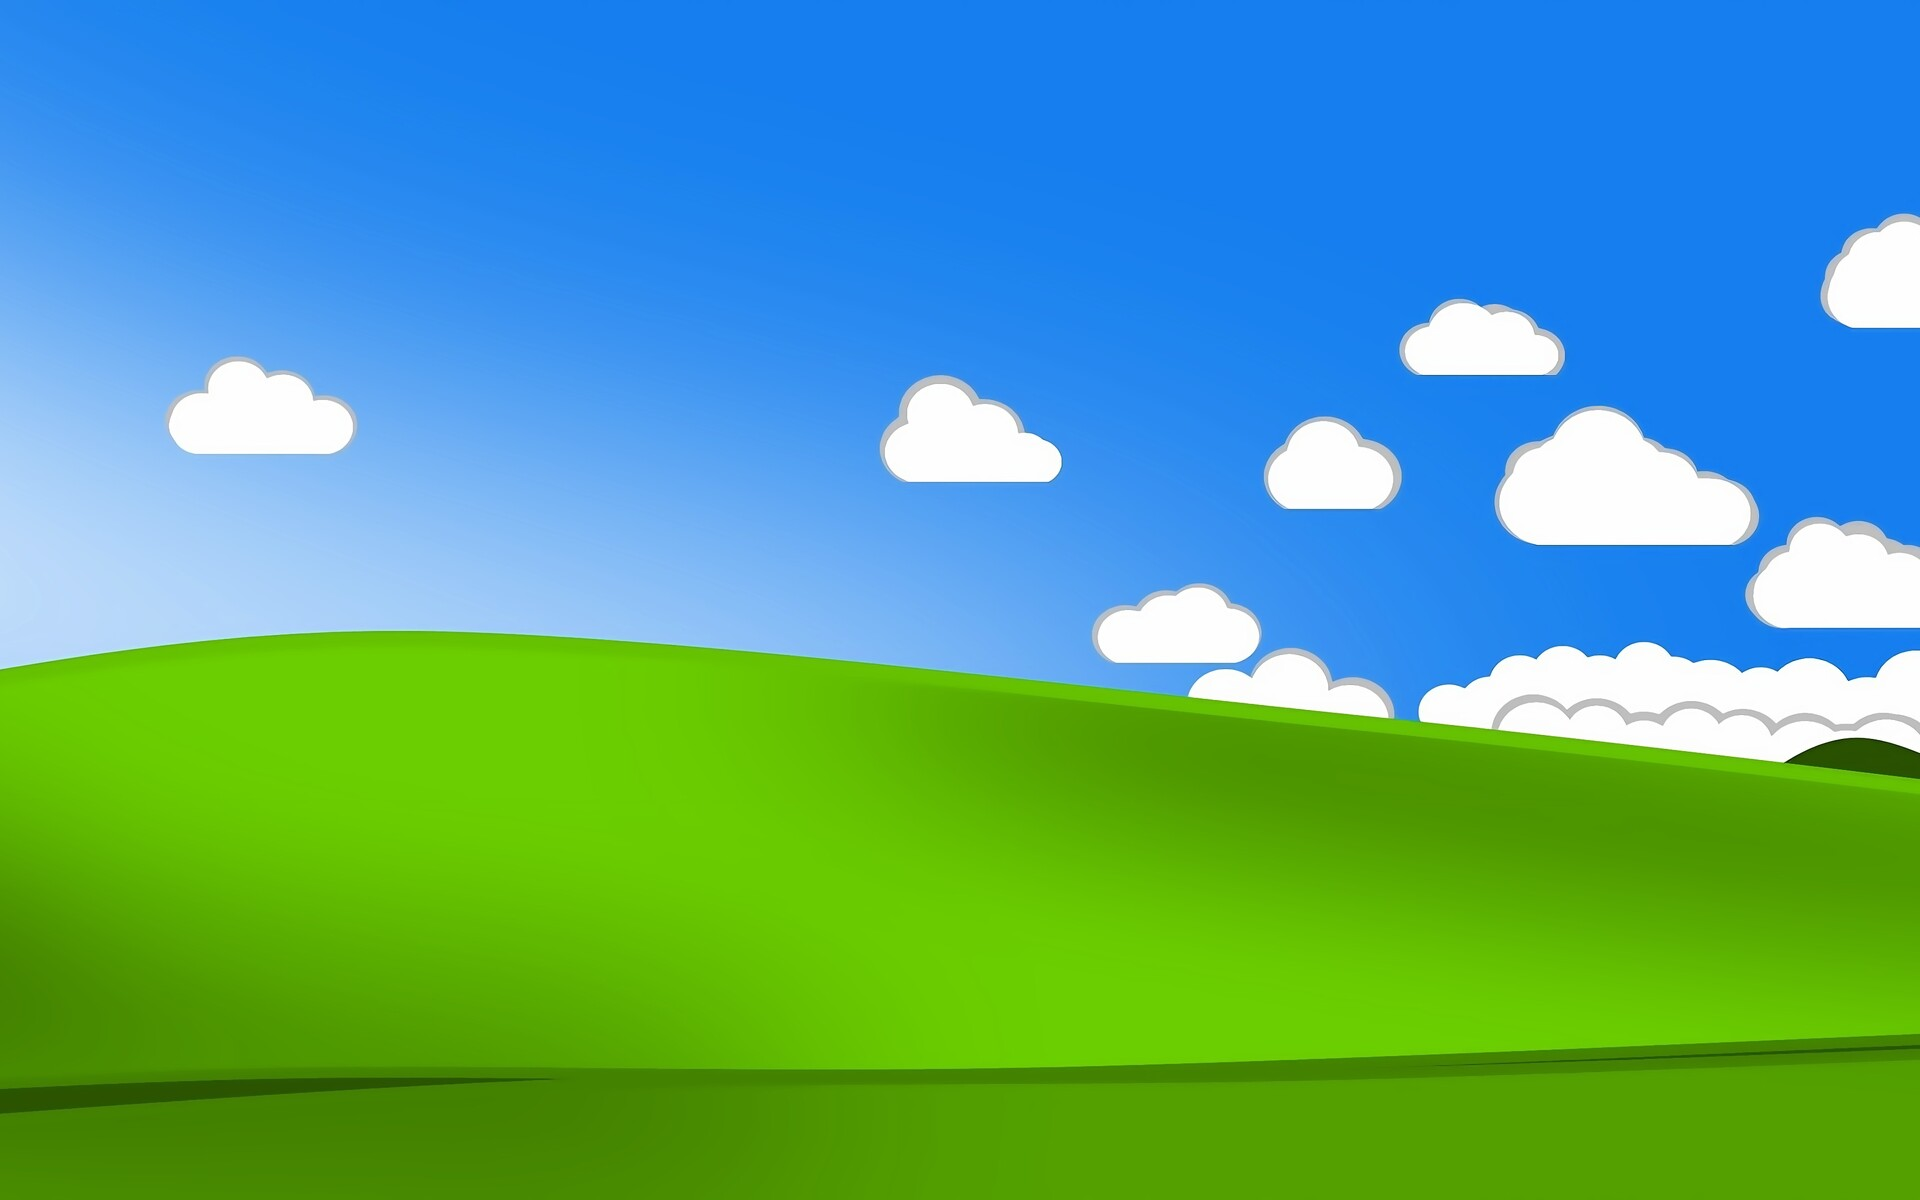 1920x1200 Windows Bliss 1080p Resolution Hd 4k Wallpapers